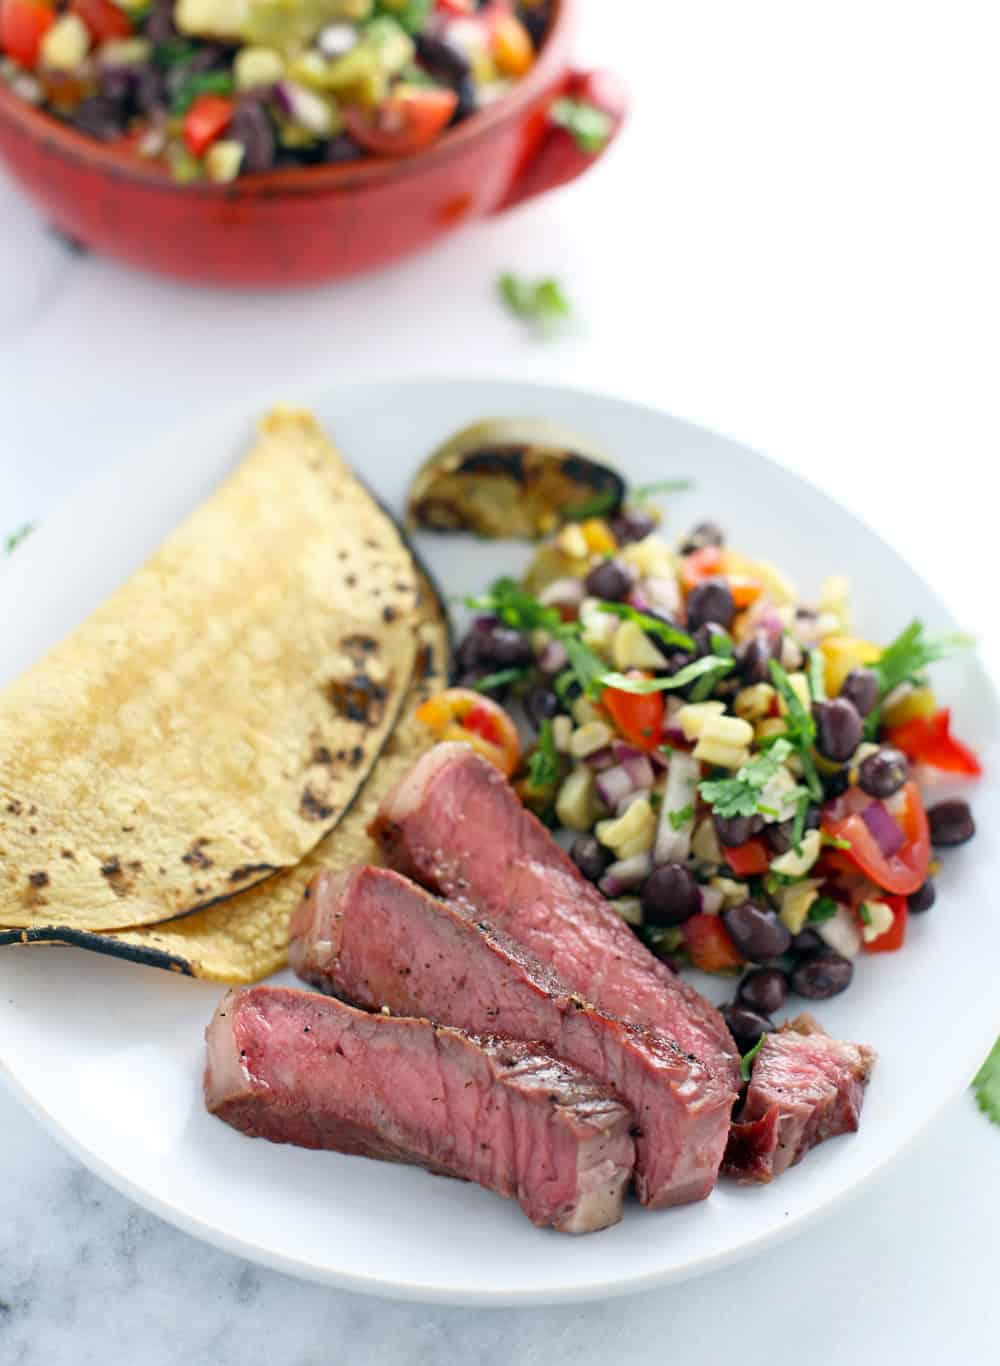 Reverse Sear Steak Tacos. A great way to stretch your dollar with an expensive cut of meat like a great ribeye.